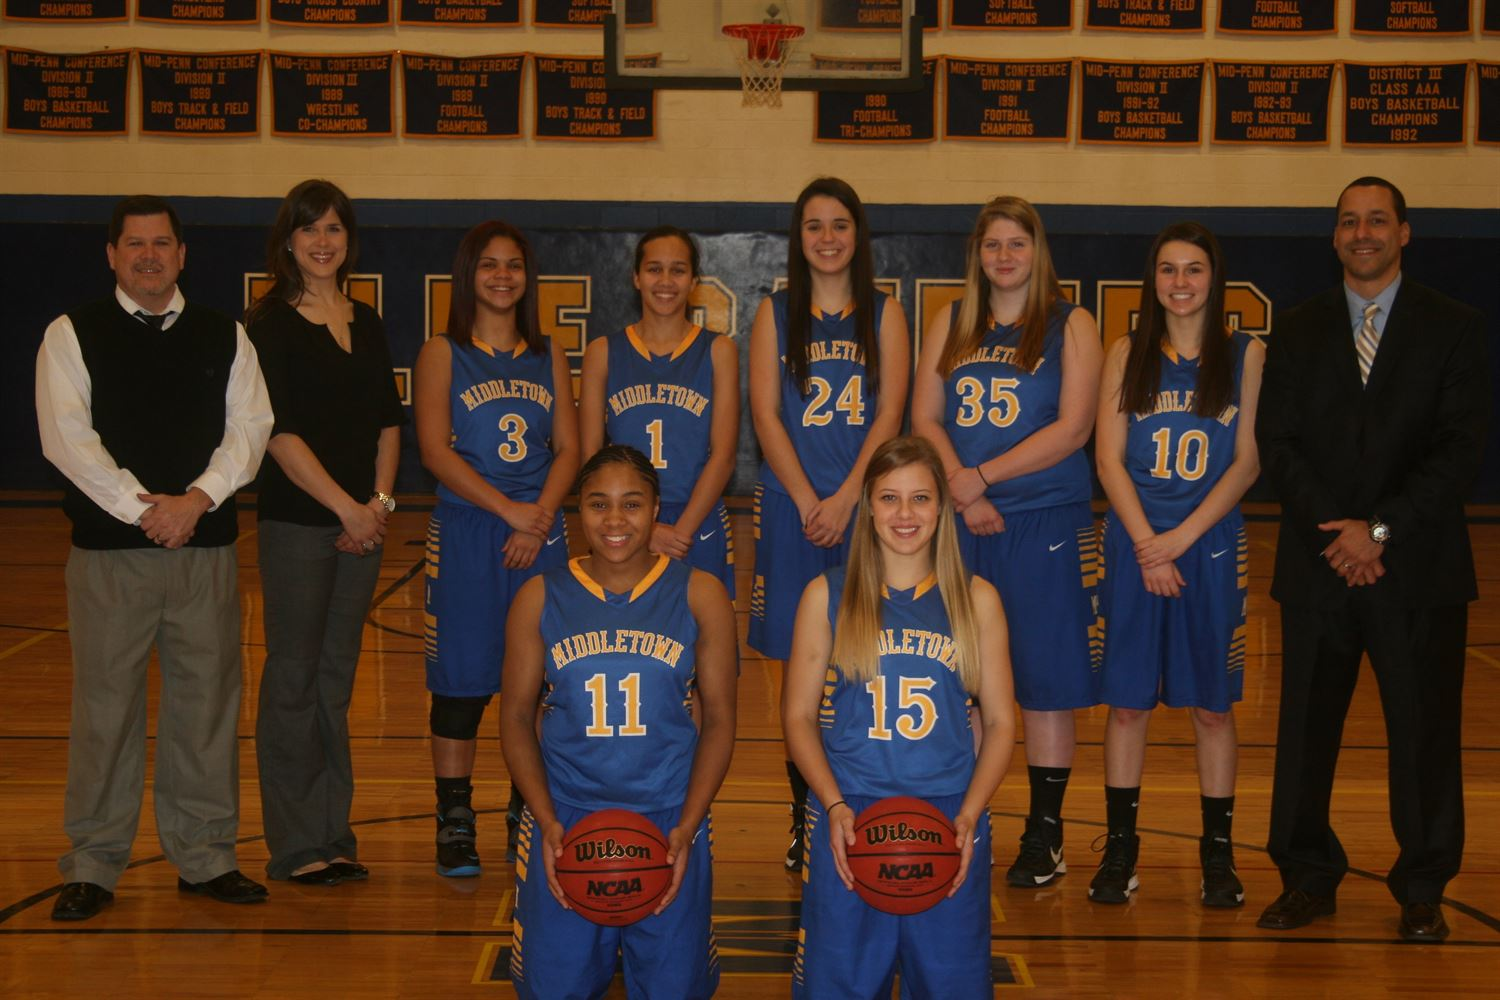 Middletown Area High School - Middletown Girls Basketball